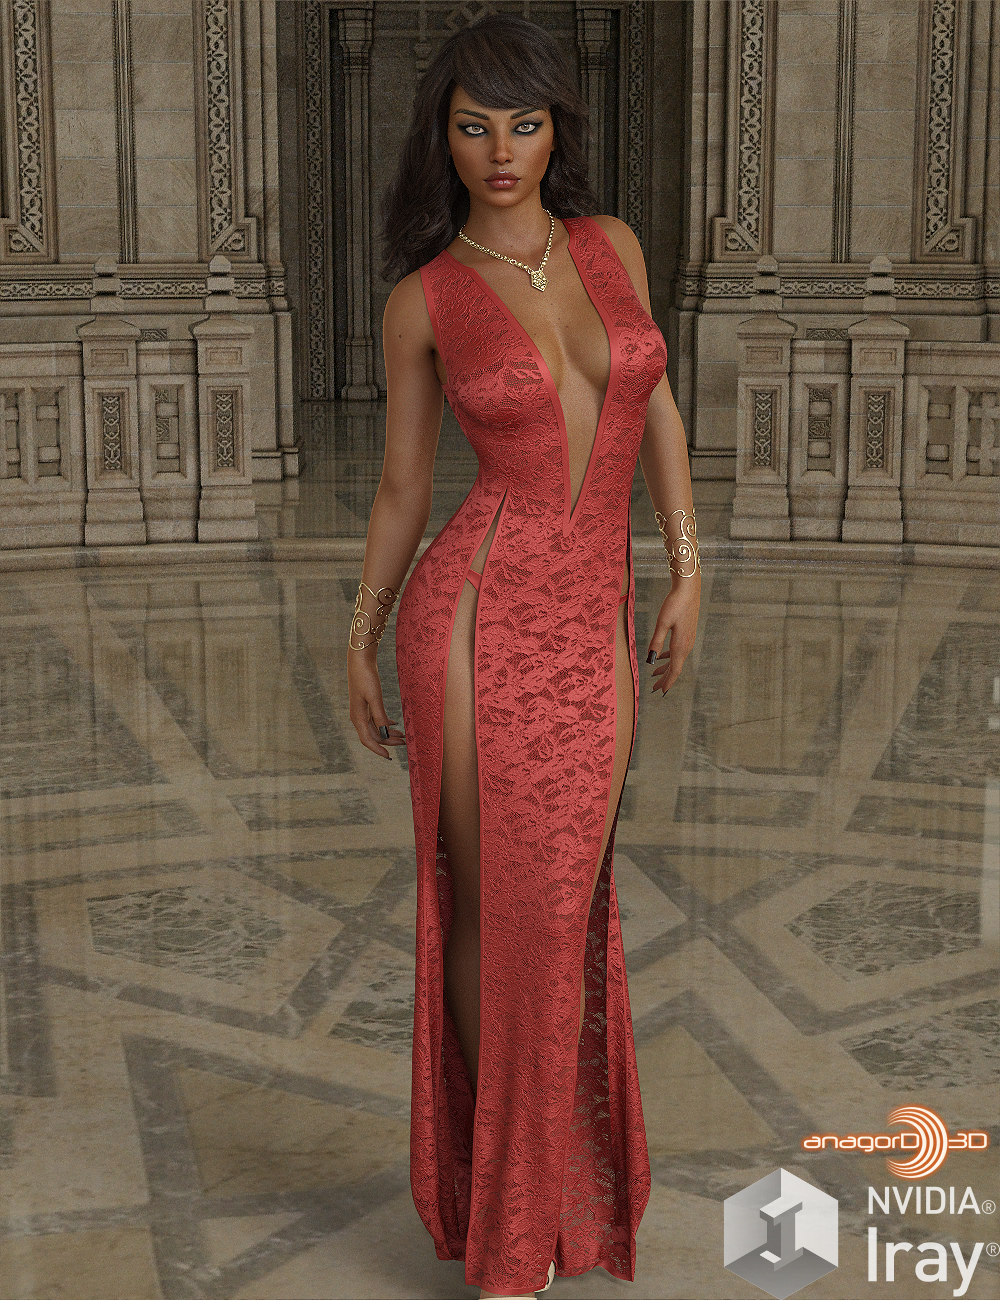 VERSUS - dforce SlowBurn Dress for G8F EXPANSION 2